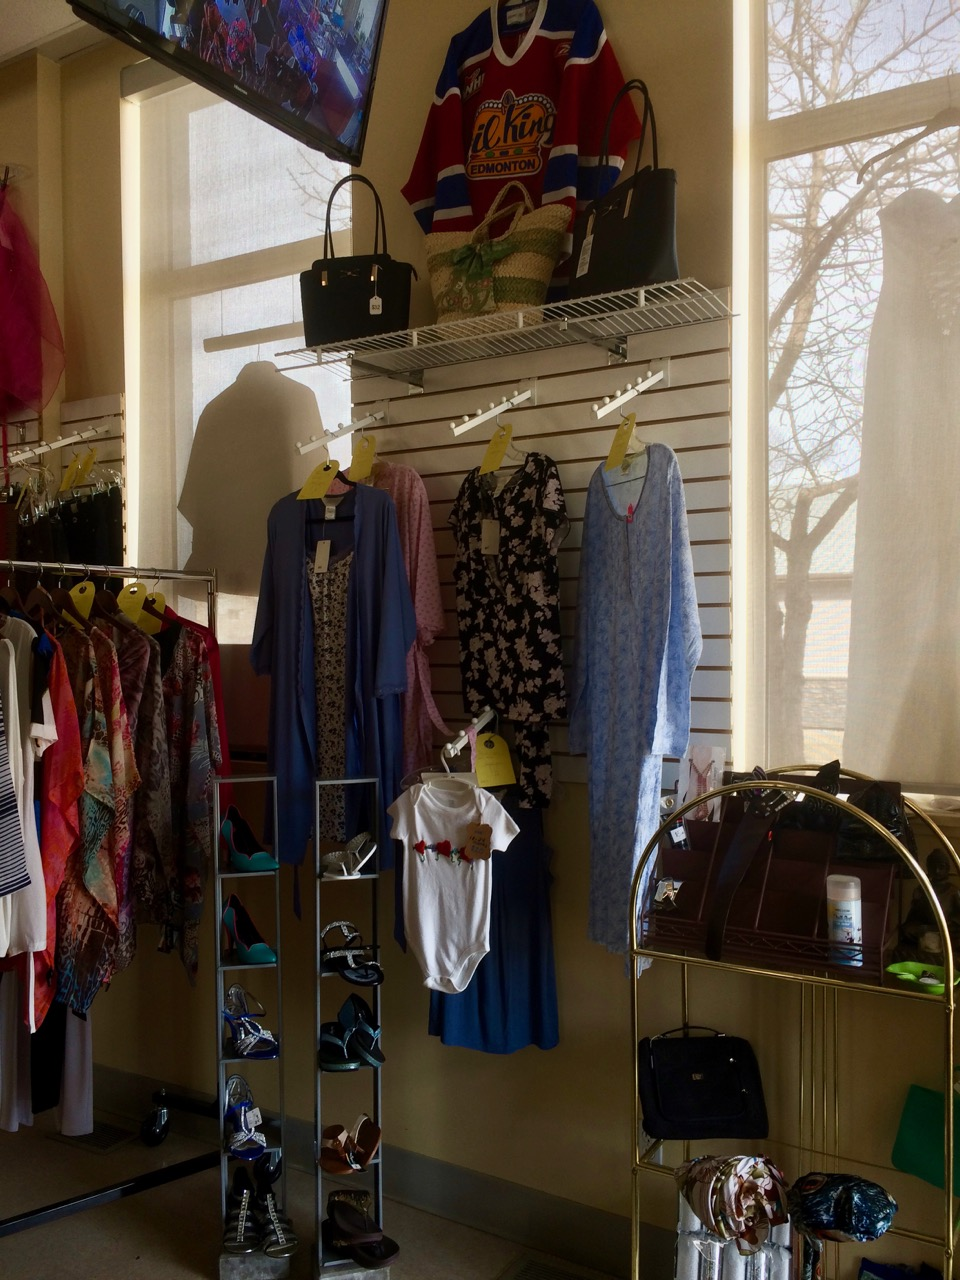 HJCs | clothing store | 5112 50 Ave, Lamont, AB T0B 2R0, Canada | 7805792113 OR +1 780-579-2113